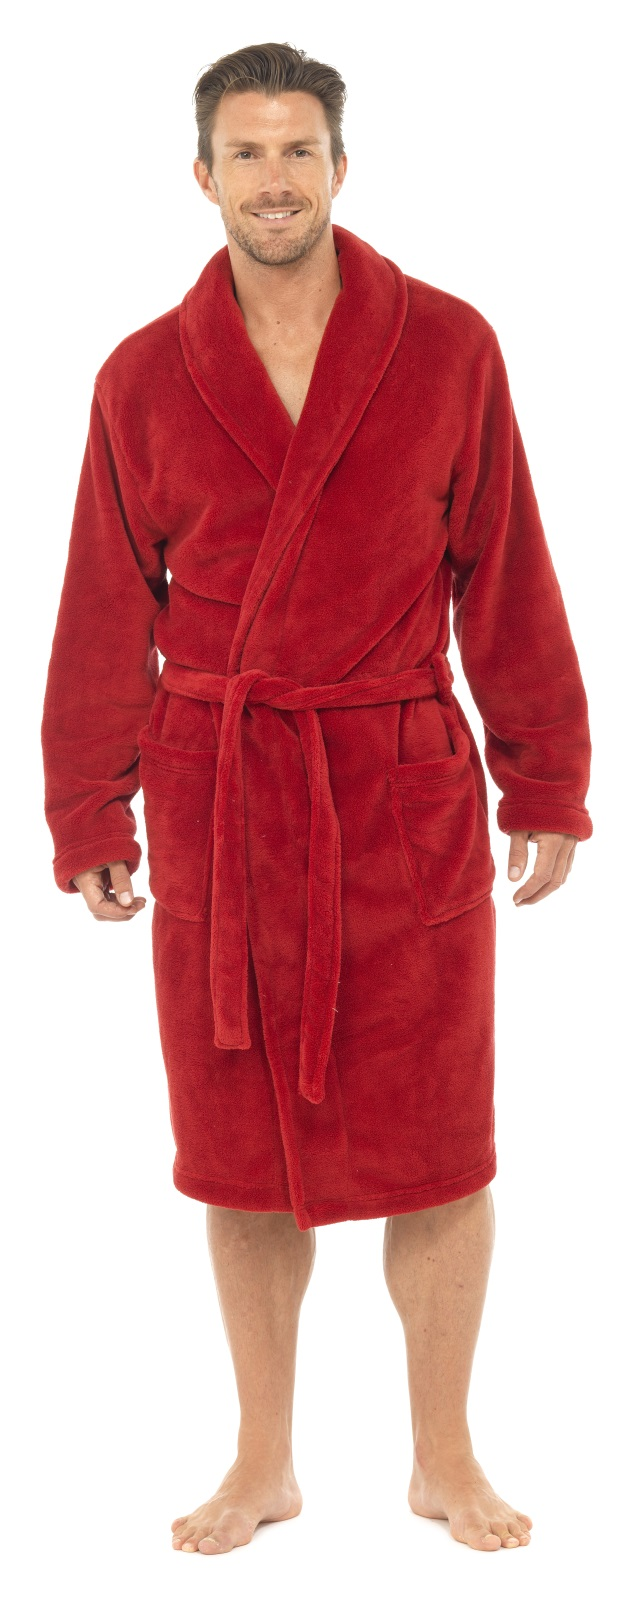 Fantastic Red Mens Dressing Gown Component - Images for wedding gown ...